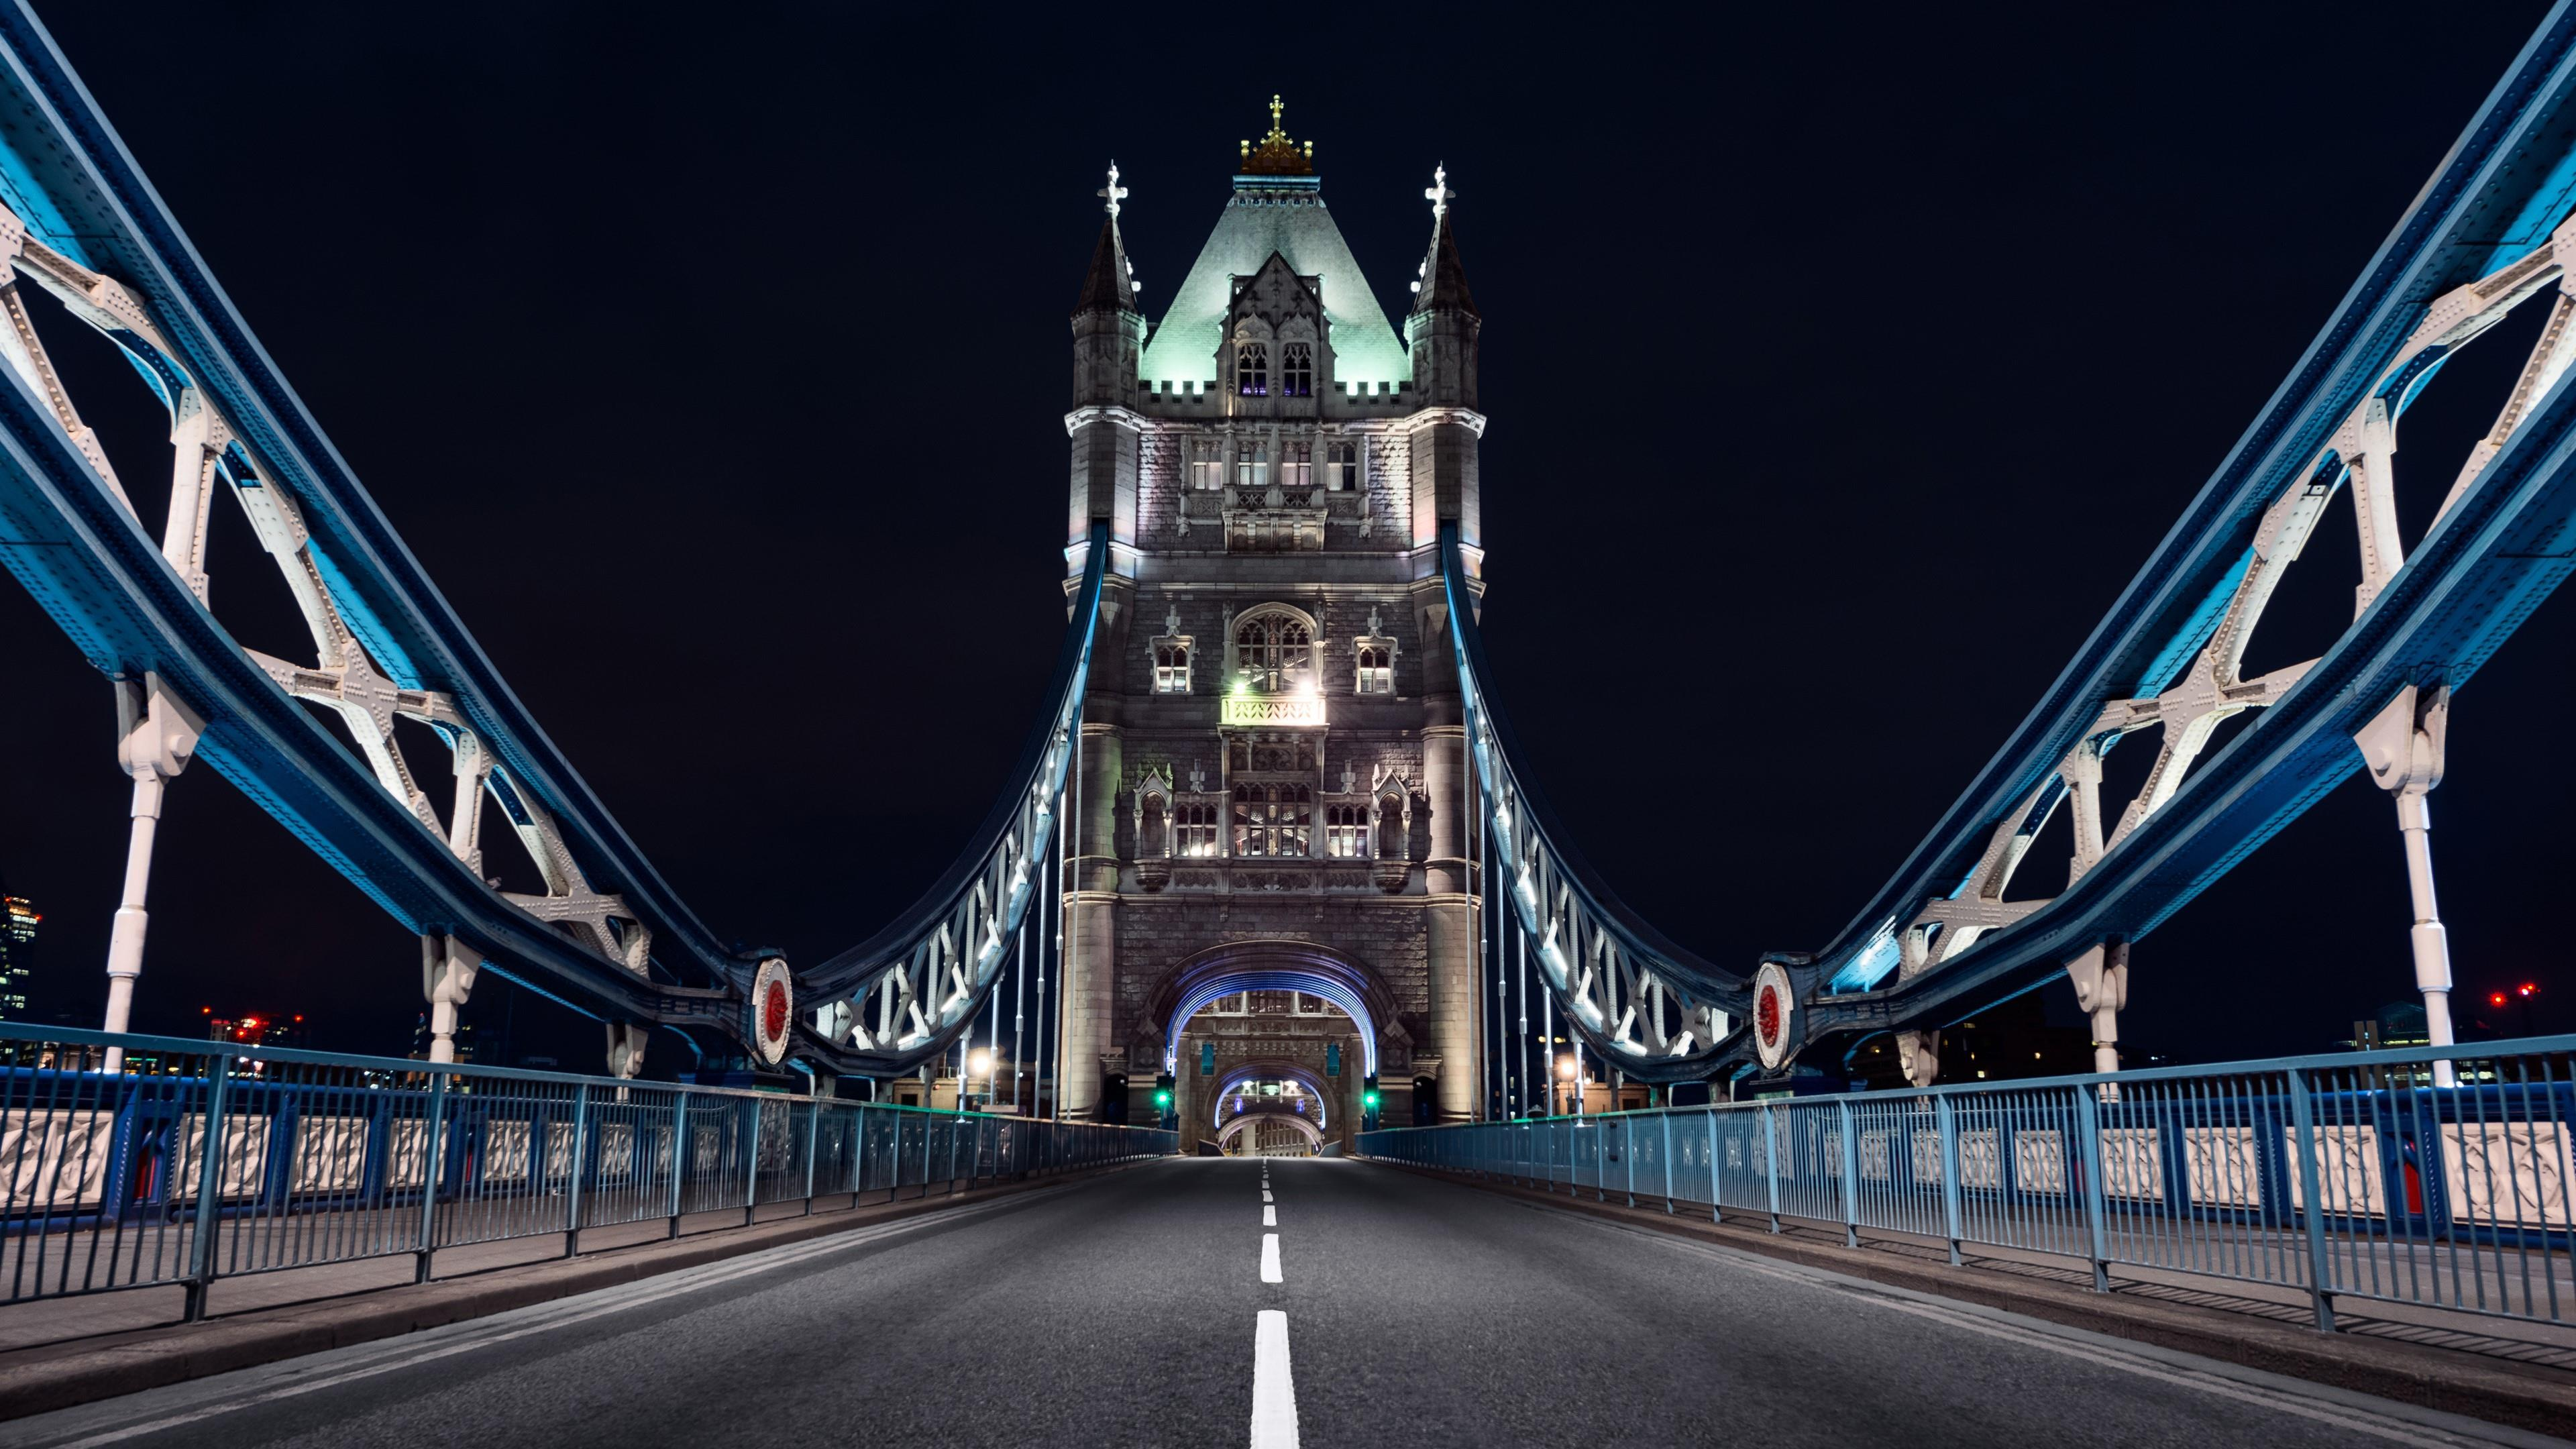 Tower Bridge at Night Wallpapers | Imgnooz.com